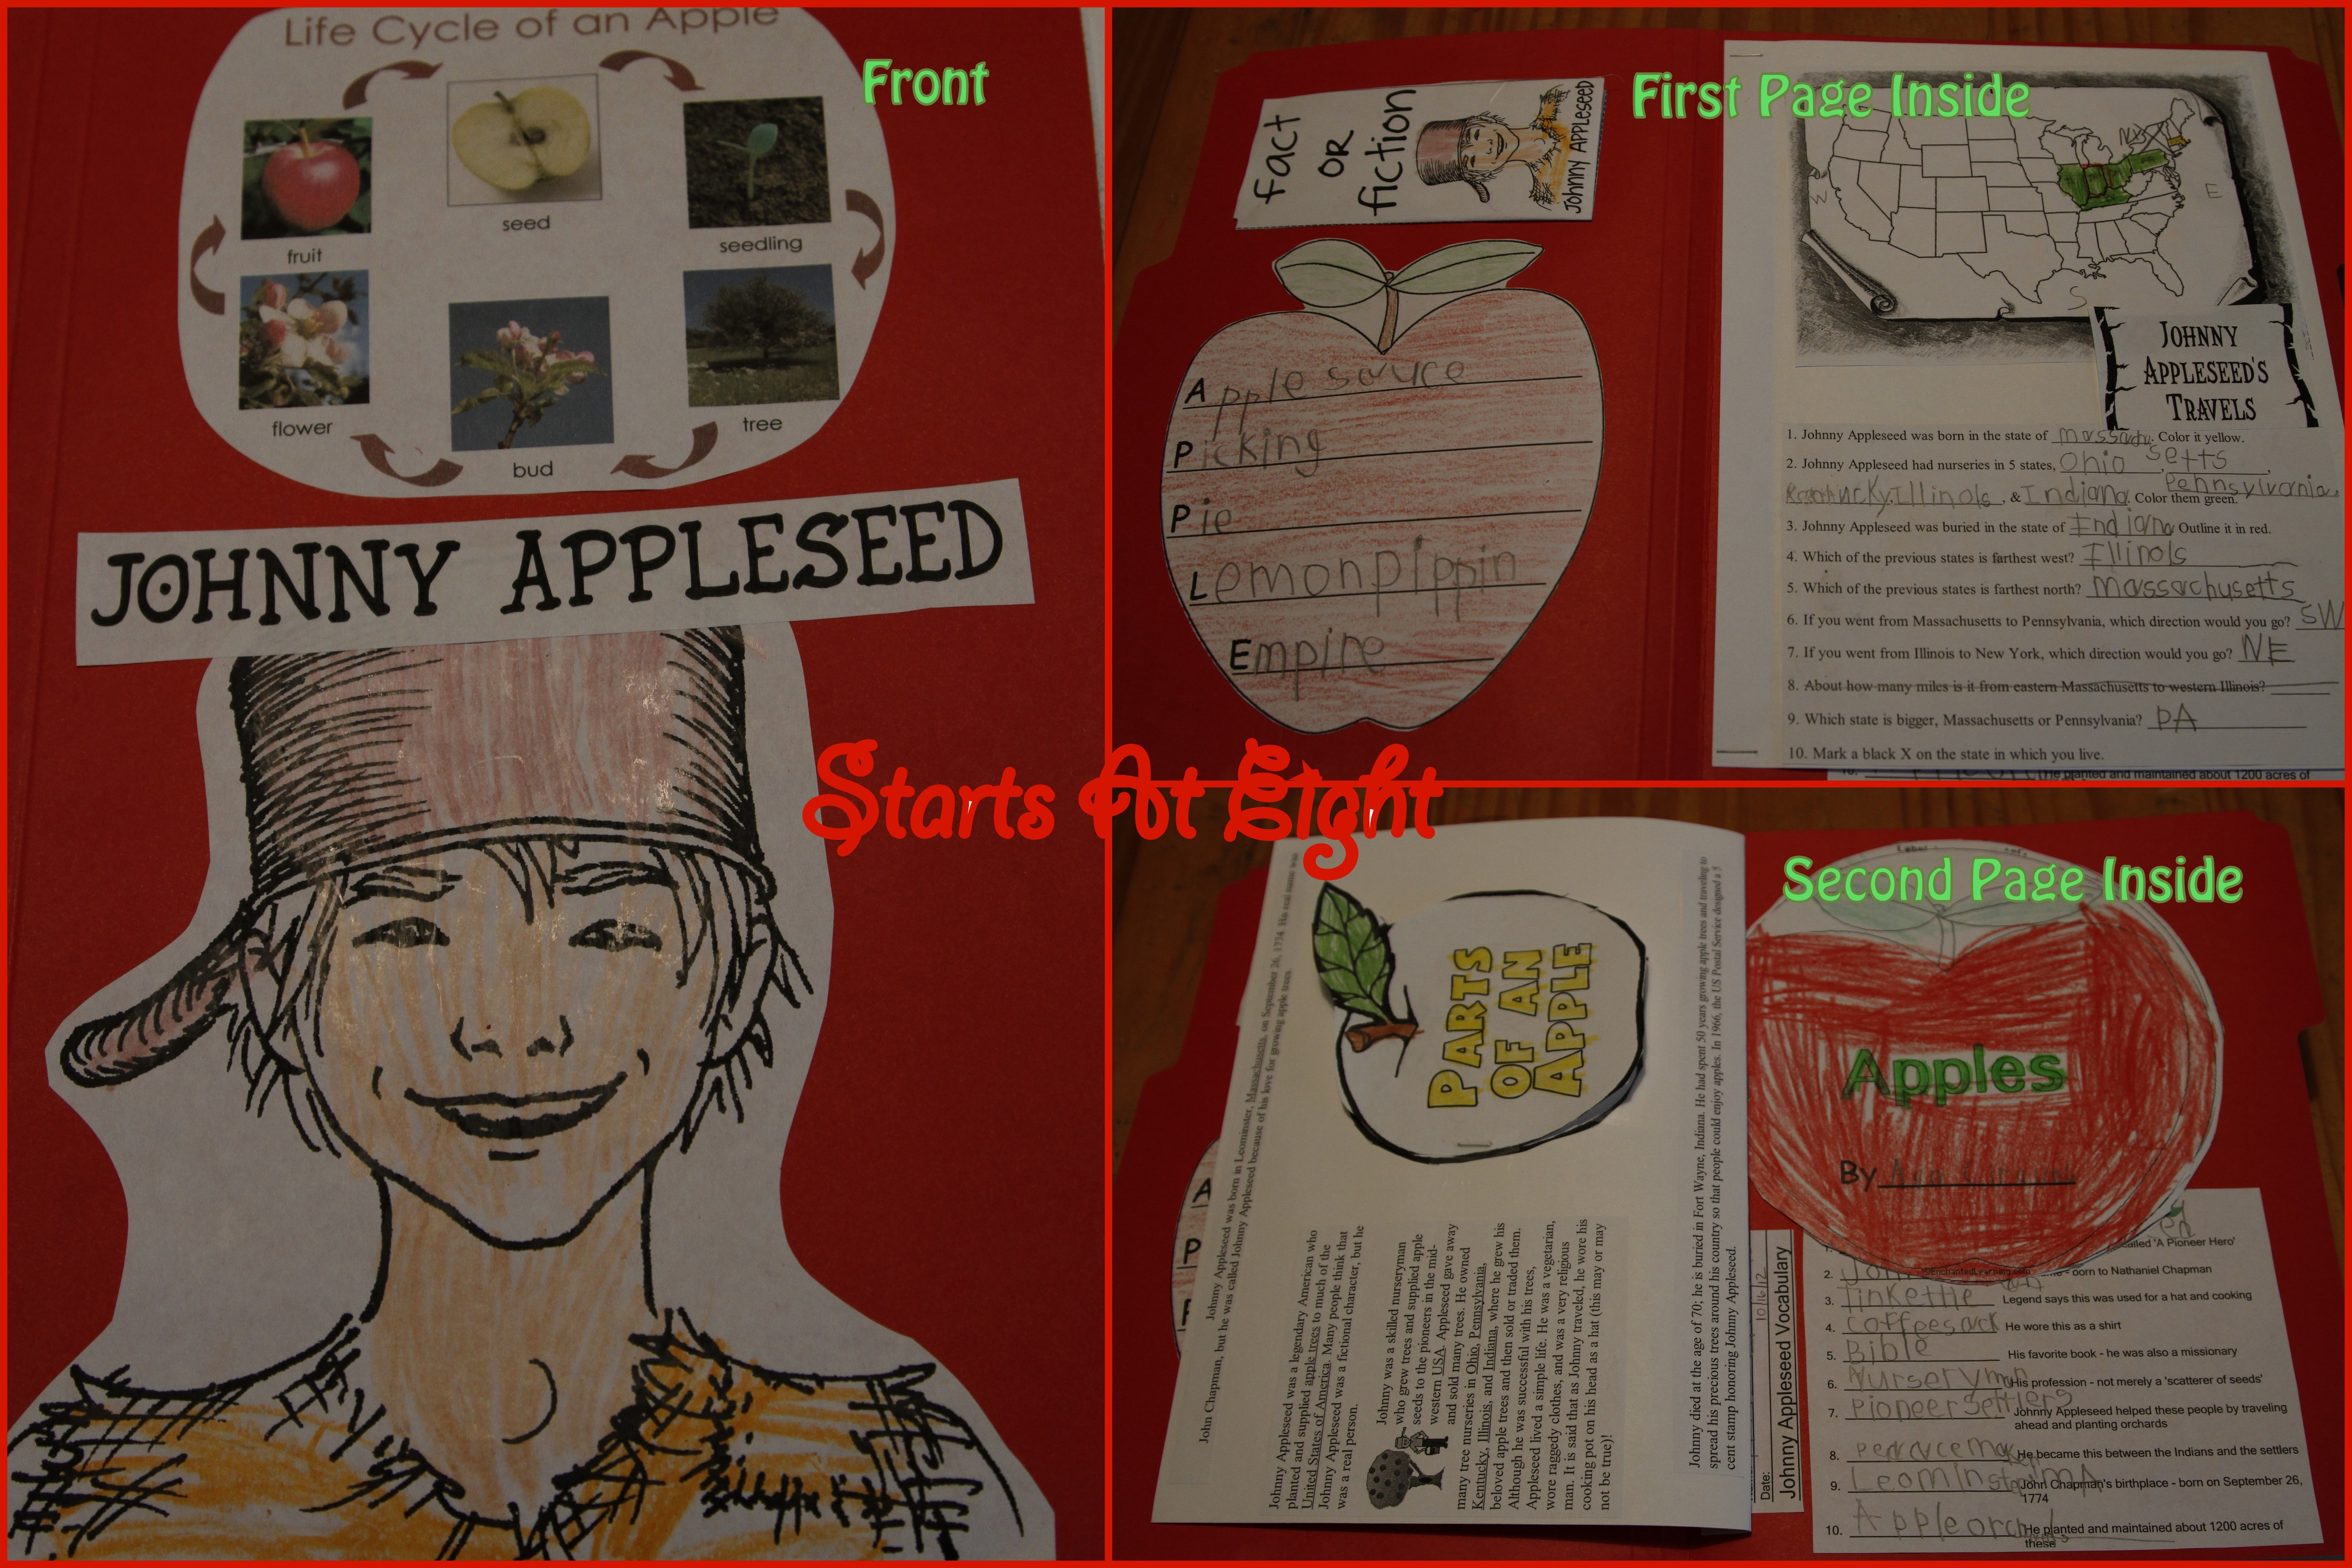 Free coloring page johnny appleseed - Free Coloring Page Johnny Appleseed 34